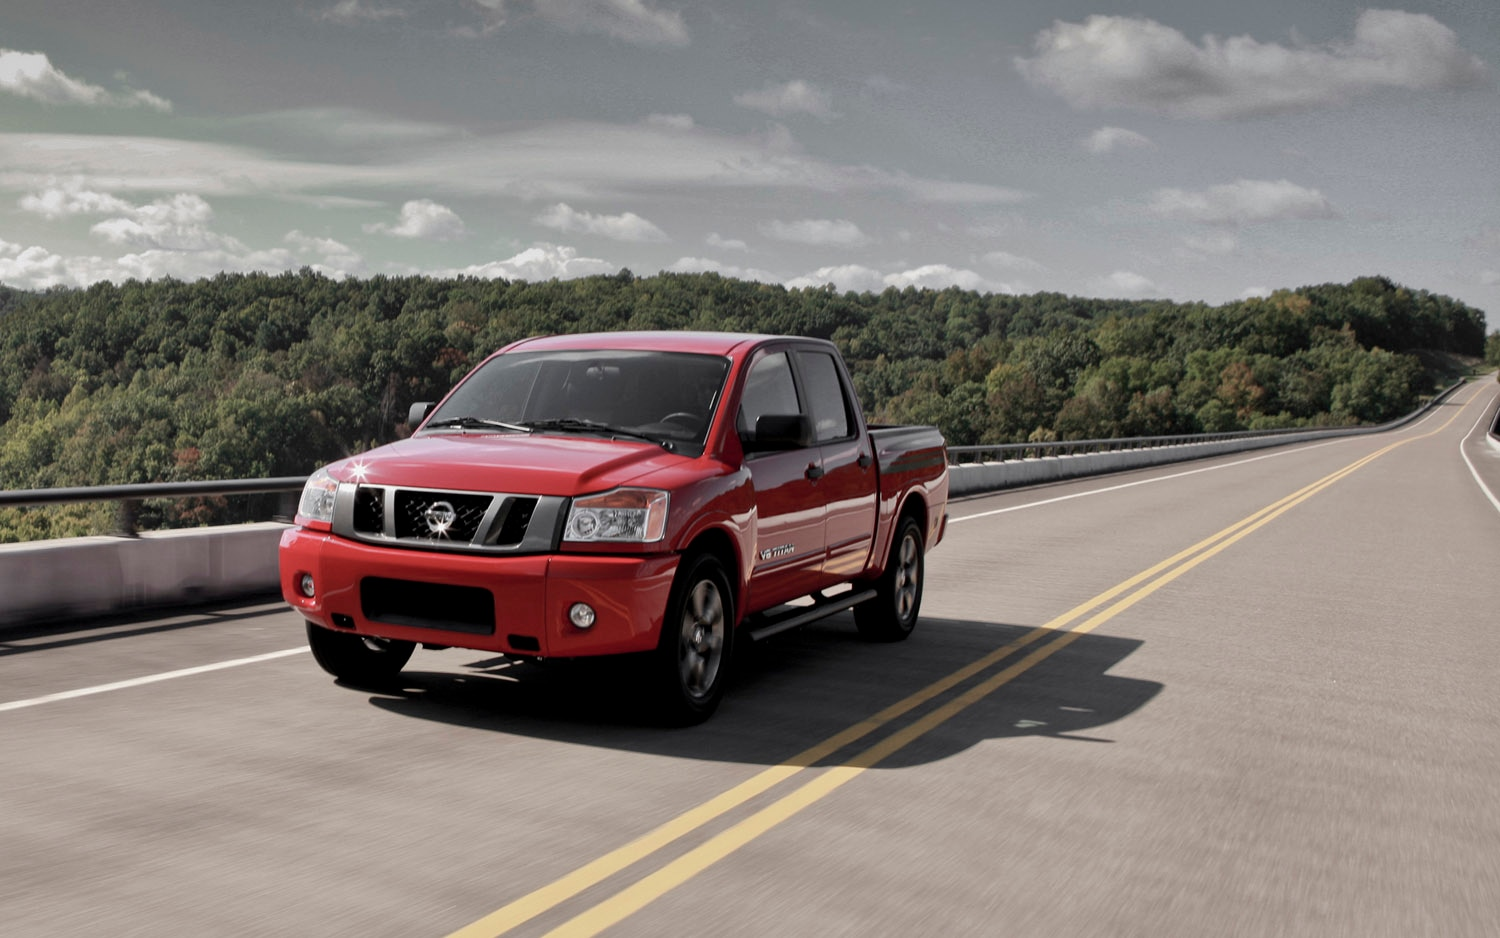 spied 2013 nissan titan testing in michigan. Black Bedroom Furniture Sets. Home Design Ideas